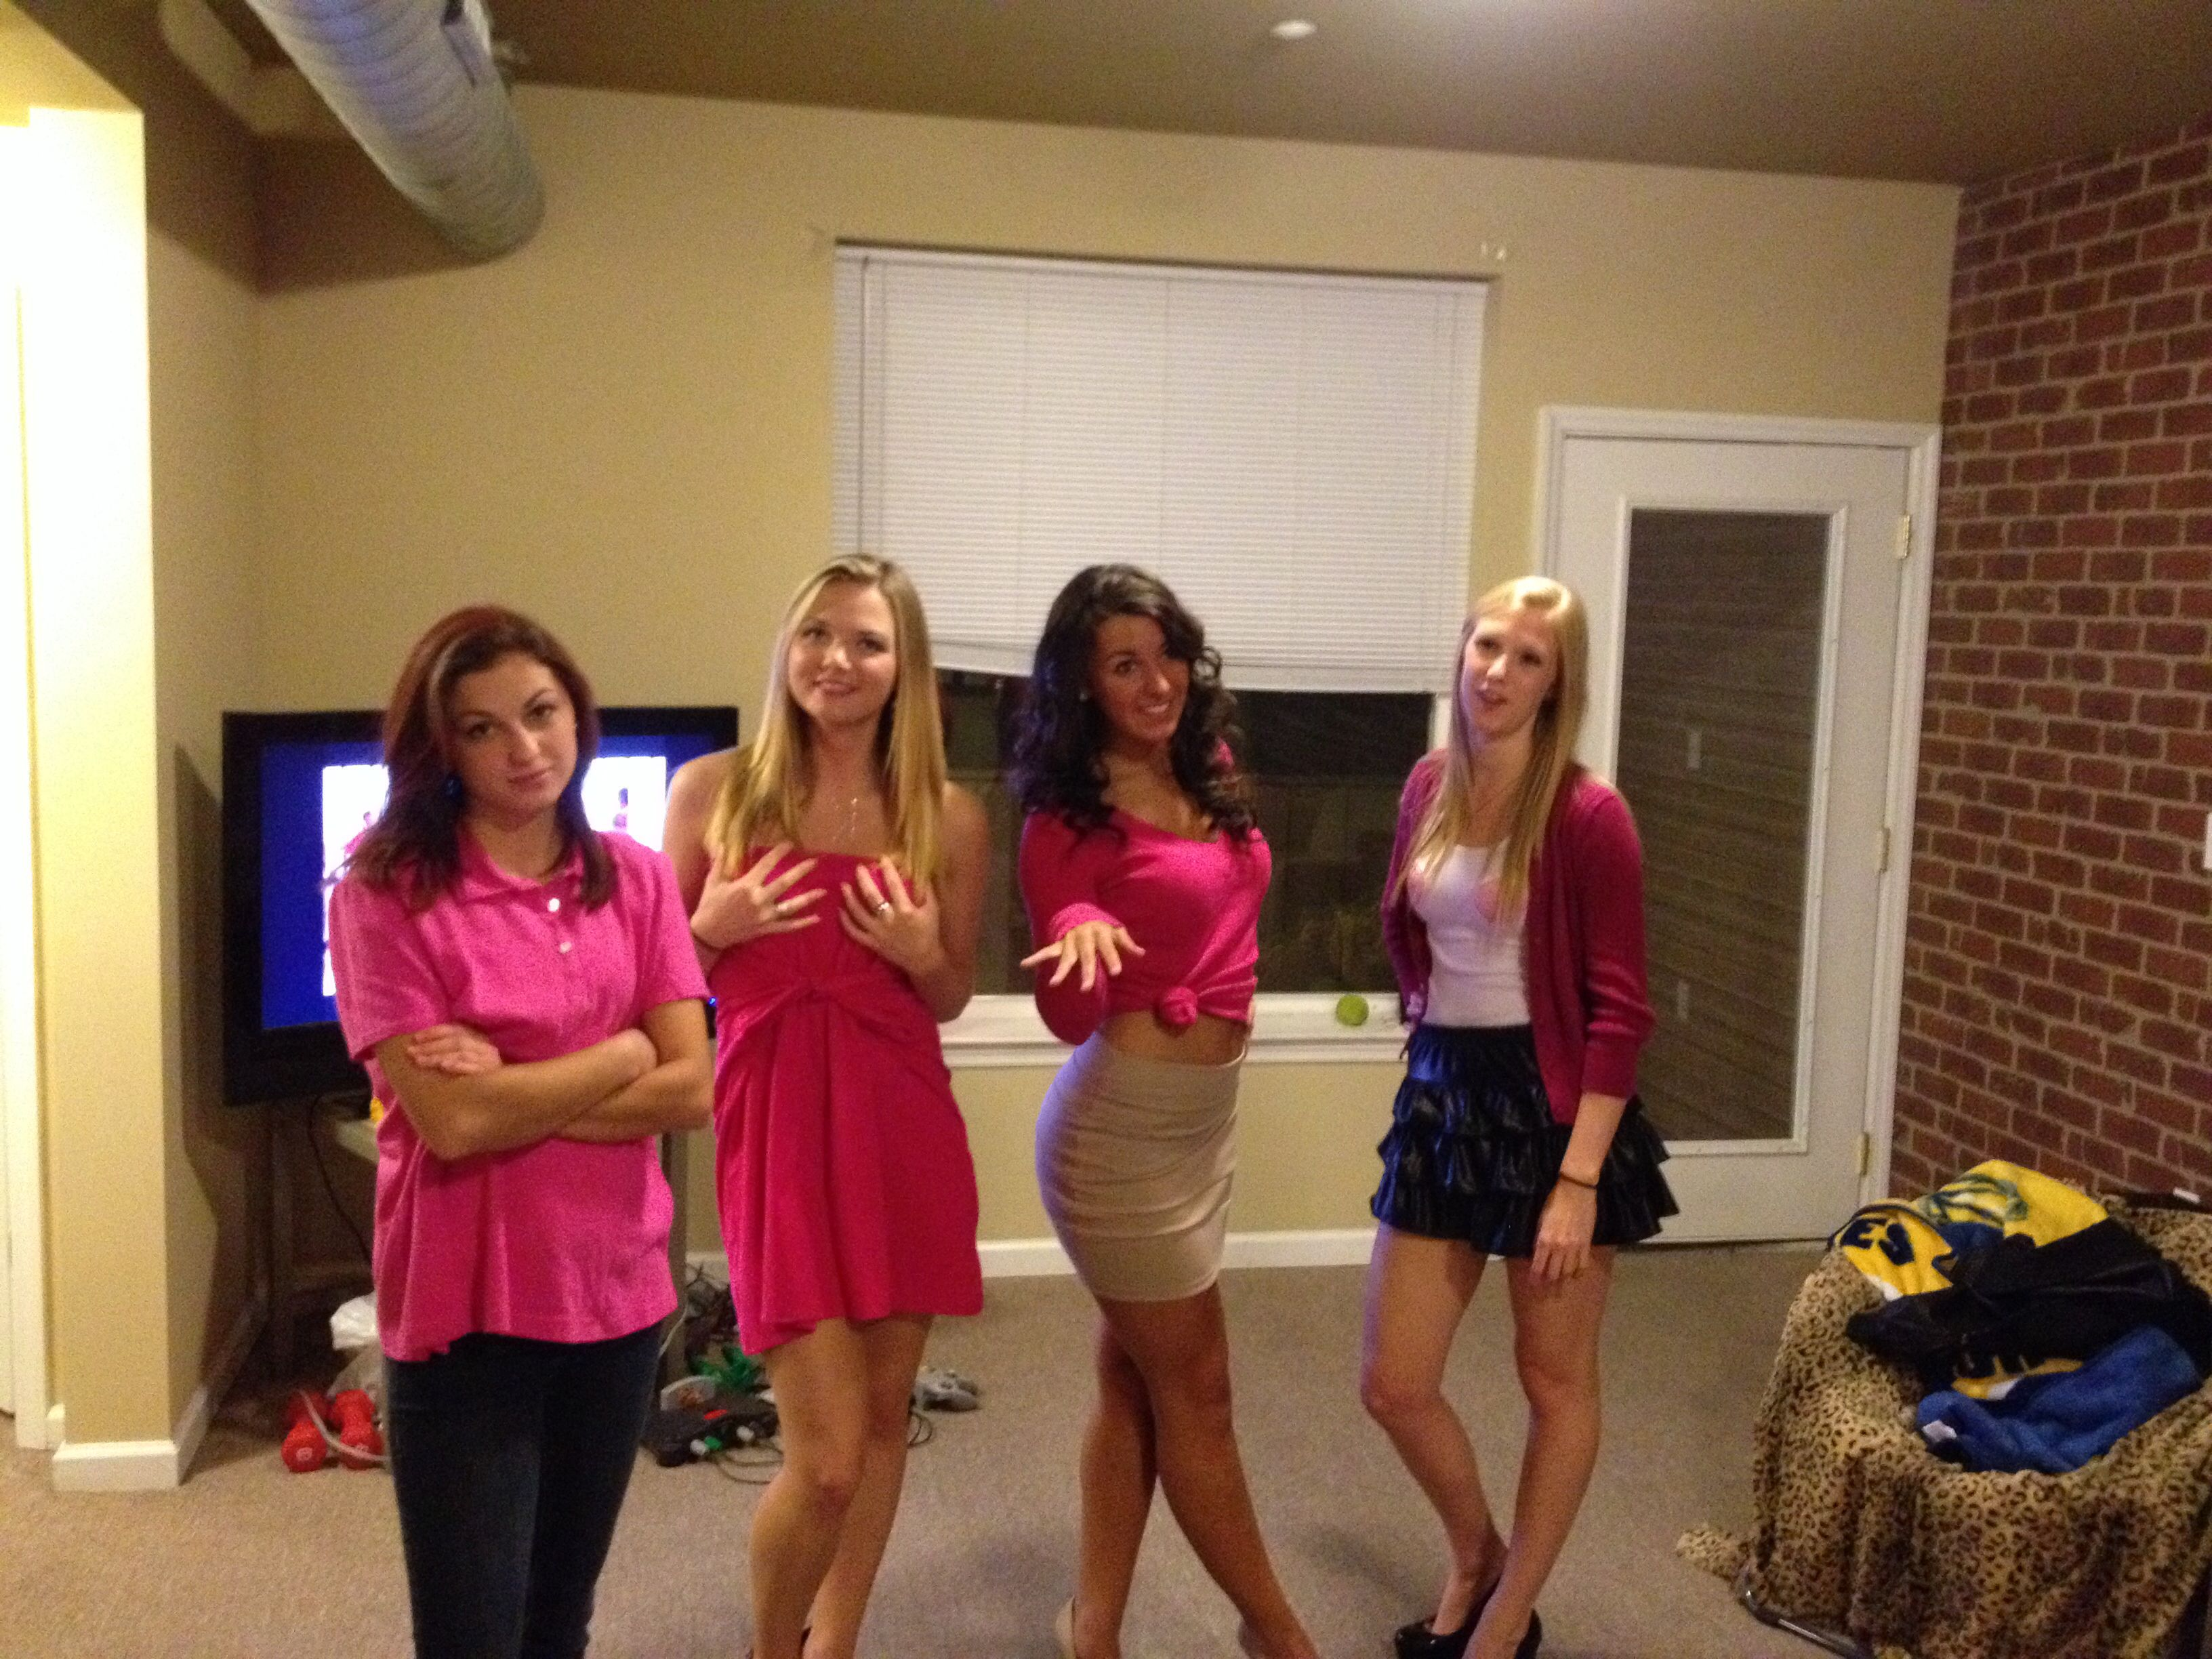 mean girls halloween costume - 4 Girls Halloween Costumes